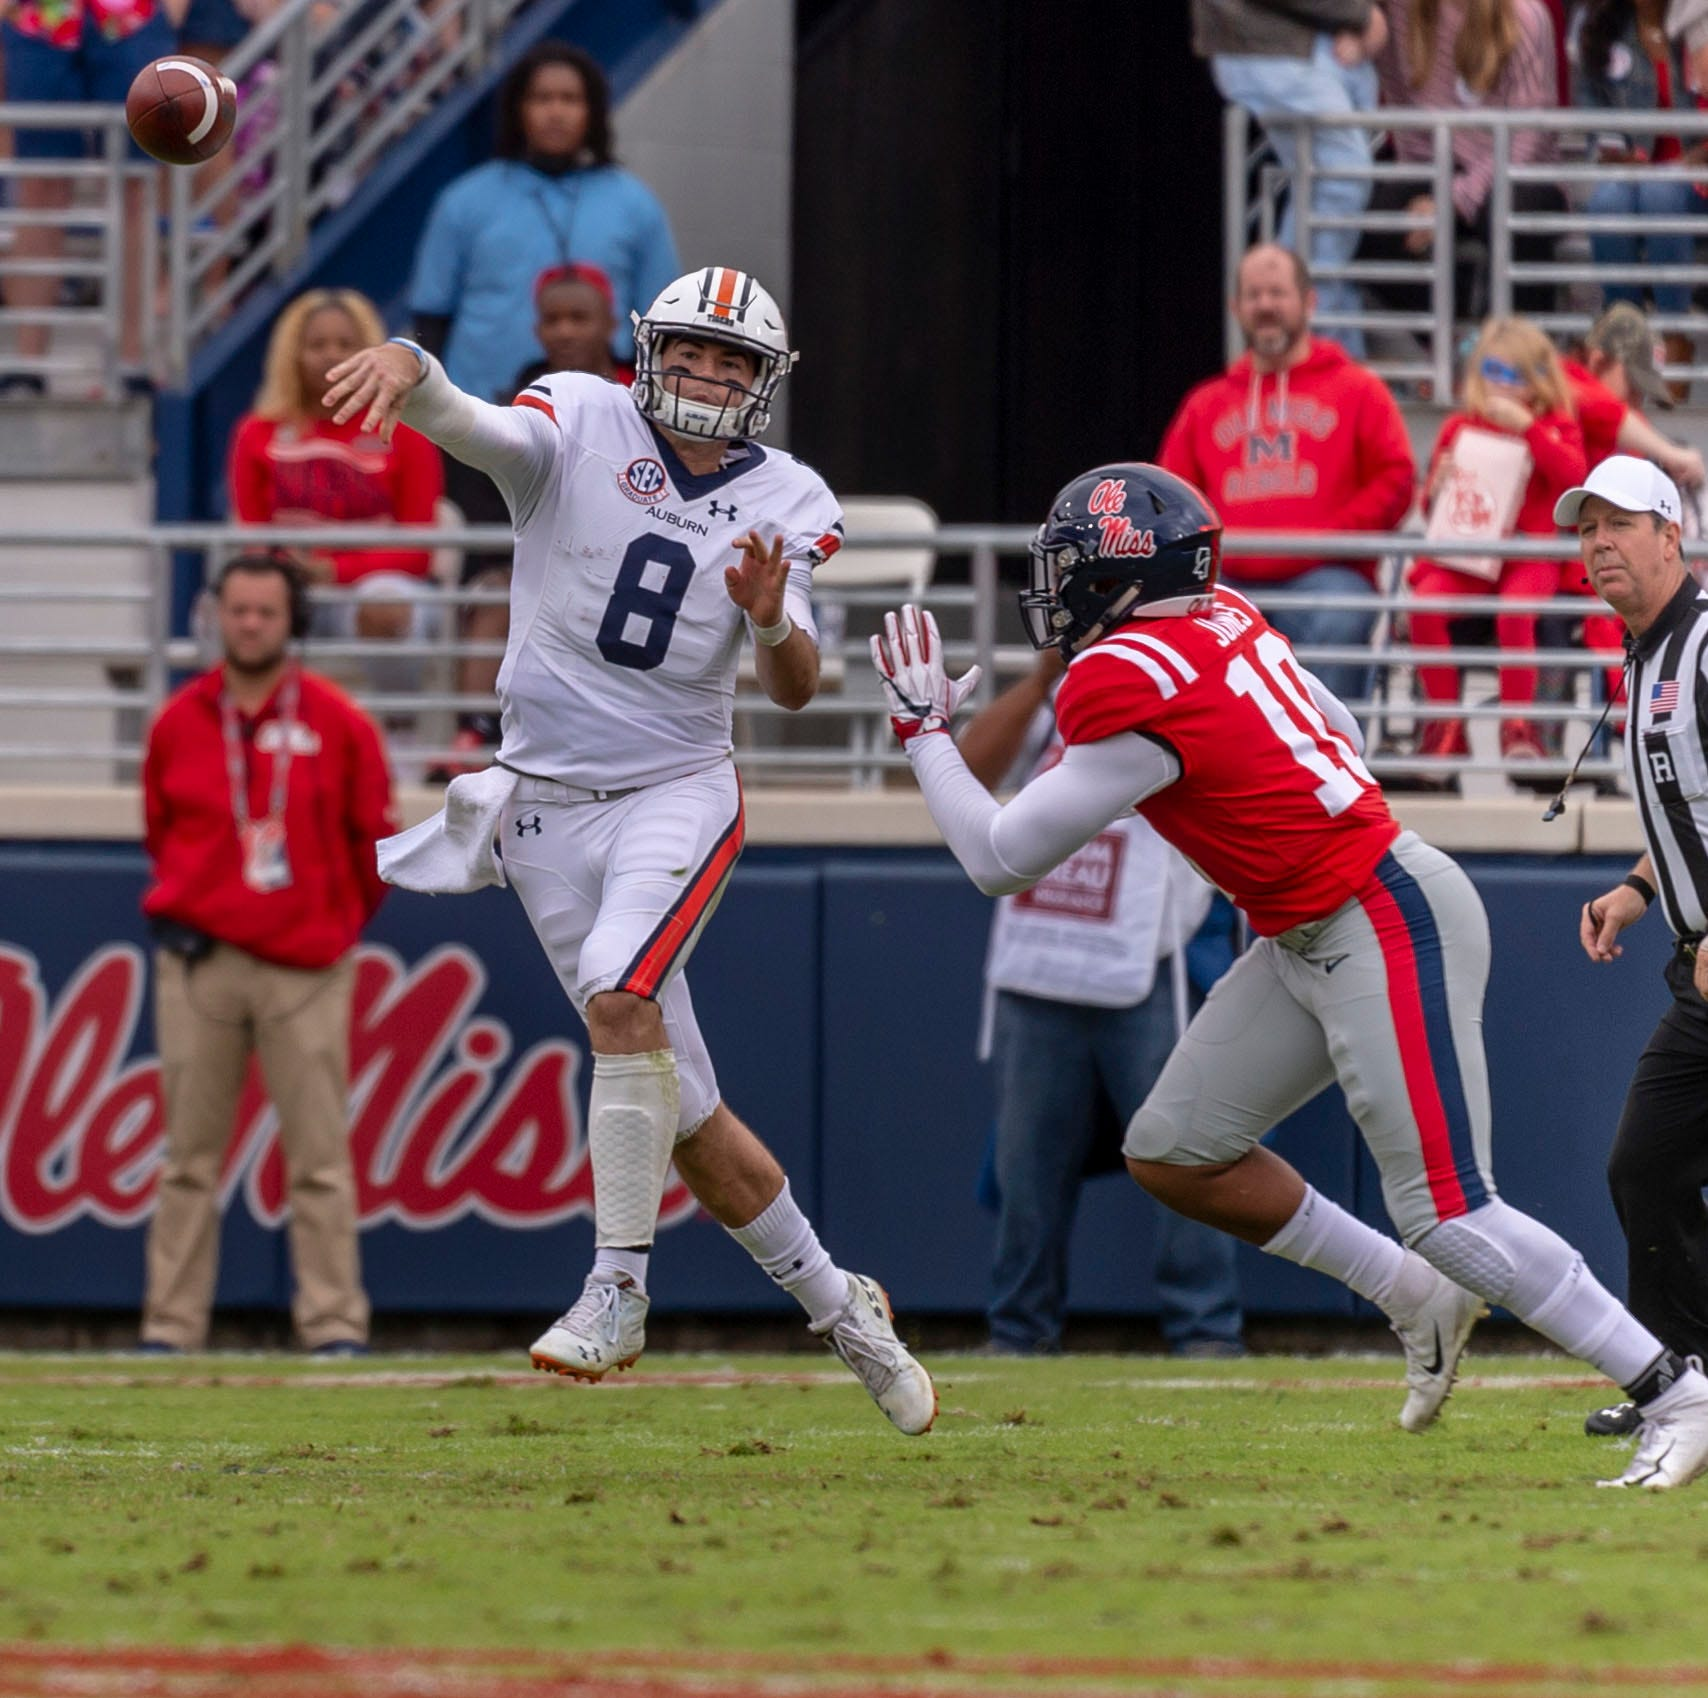 Ole Miss defense falters in second half, Rebels lose to Auburn 31-16